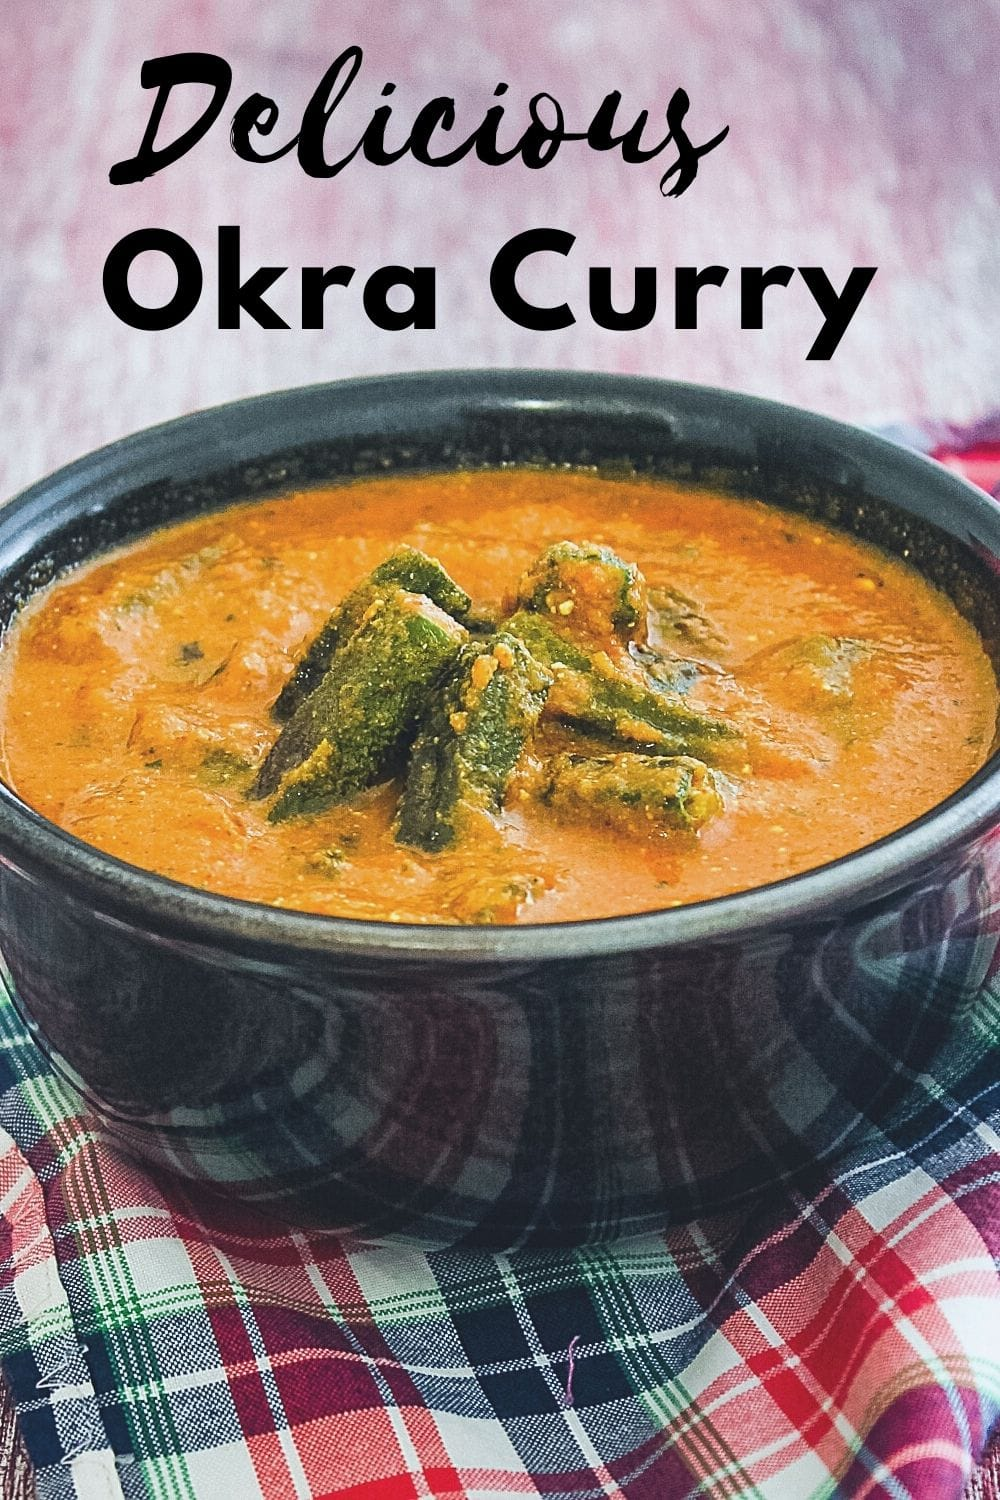 Bhindi curry in a bowl with napkin underneath with text on the image for pinterest